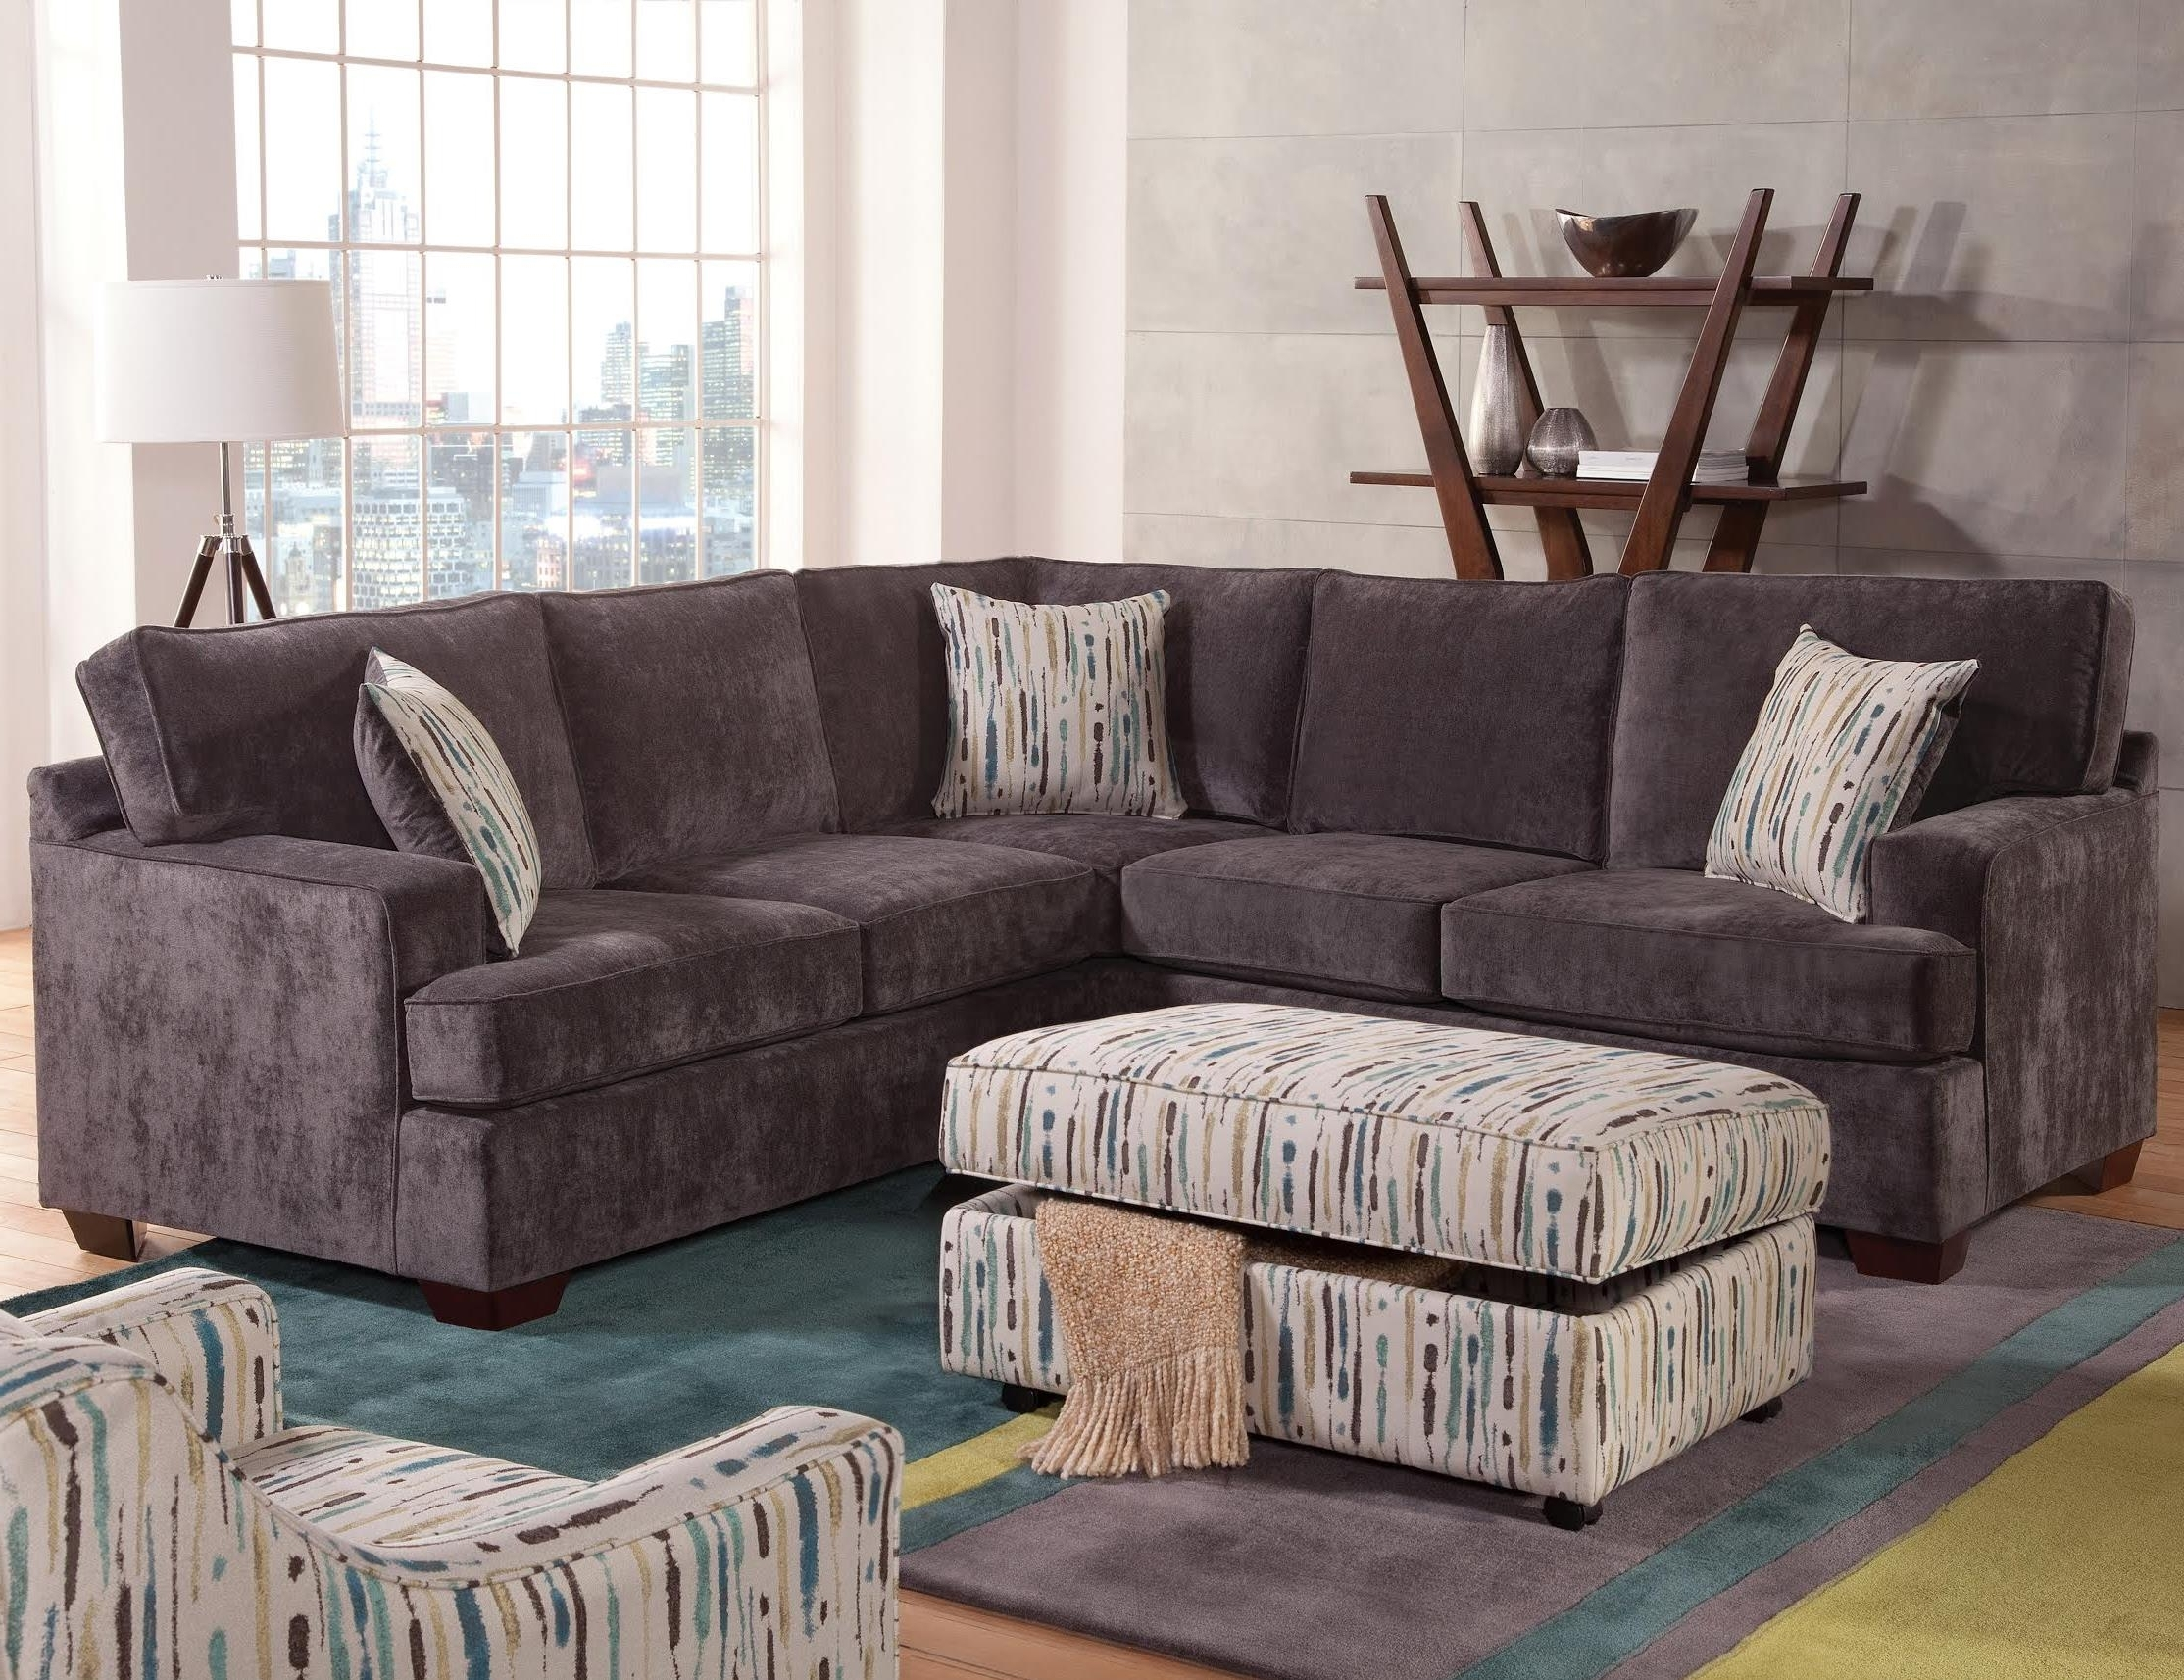 2017 Nashville Sectional Sofas Regarding Furniture : Sectional Sofa Under 90 Inches Recliner Yuma Sectional (View 13 of 15)